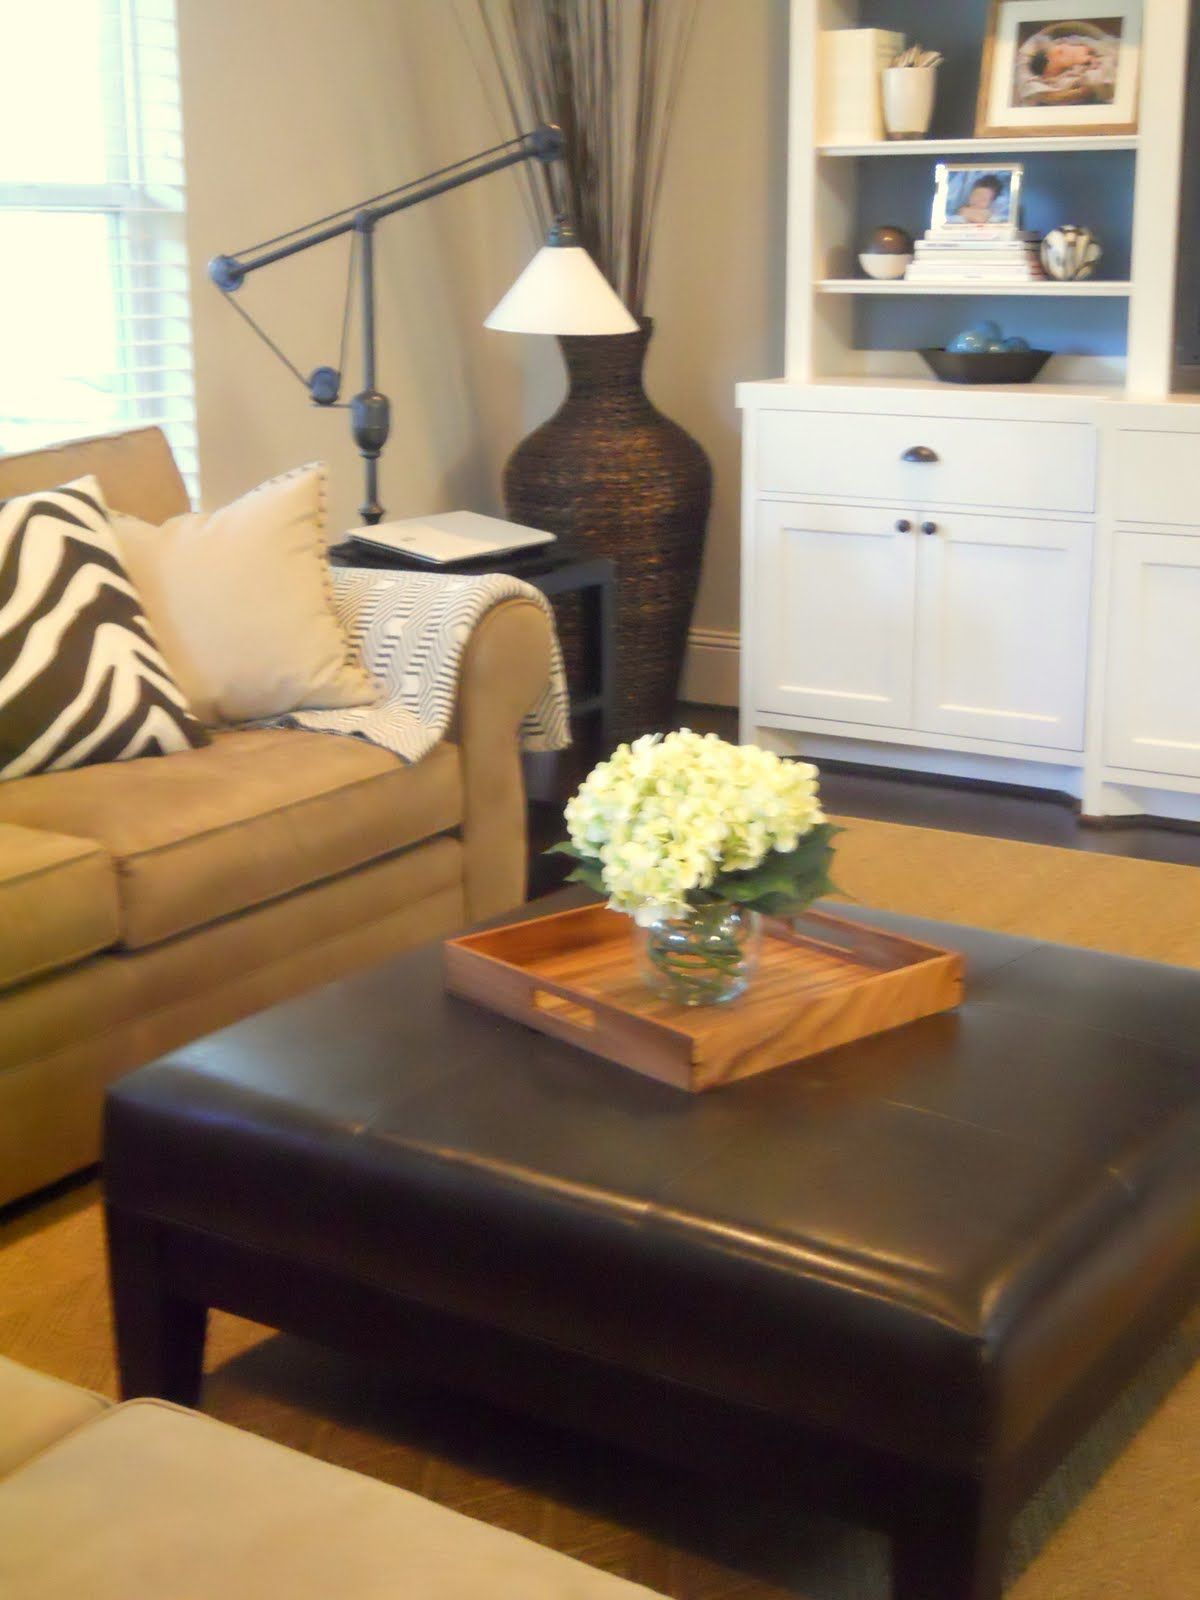 Living Room Ottoman Decor: Tan Couch With Zebra Pillow, Dark Leather